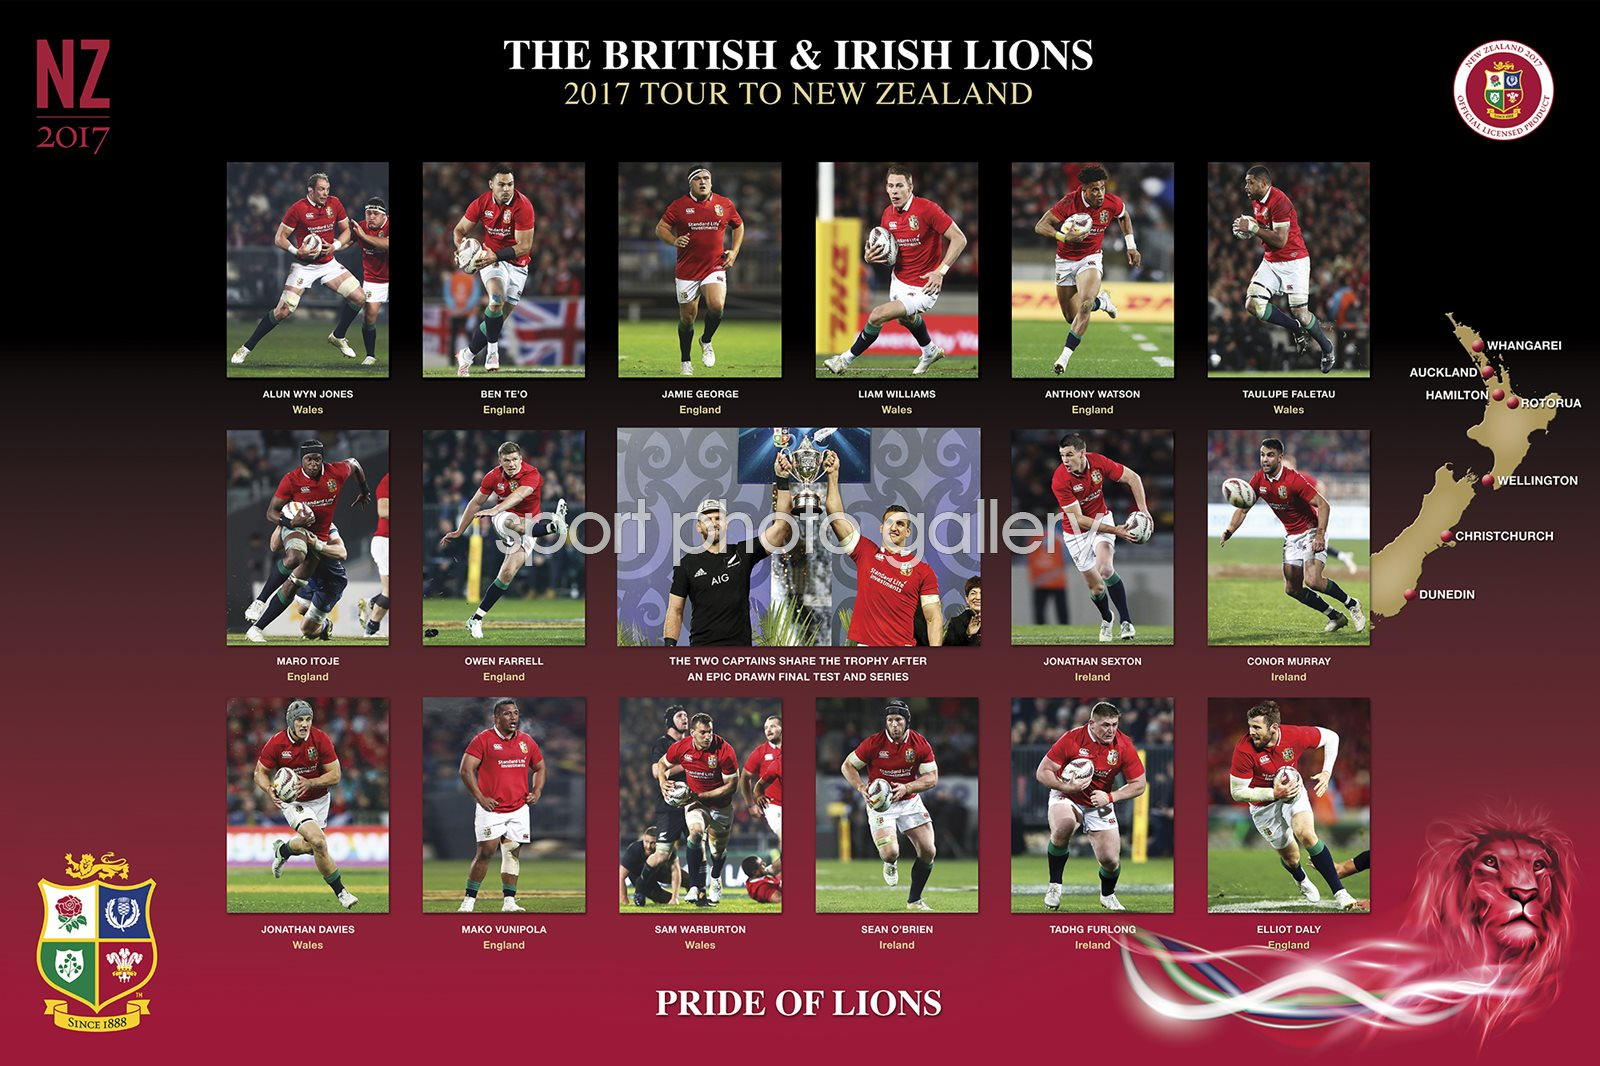 2017 Pride of Lions